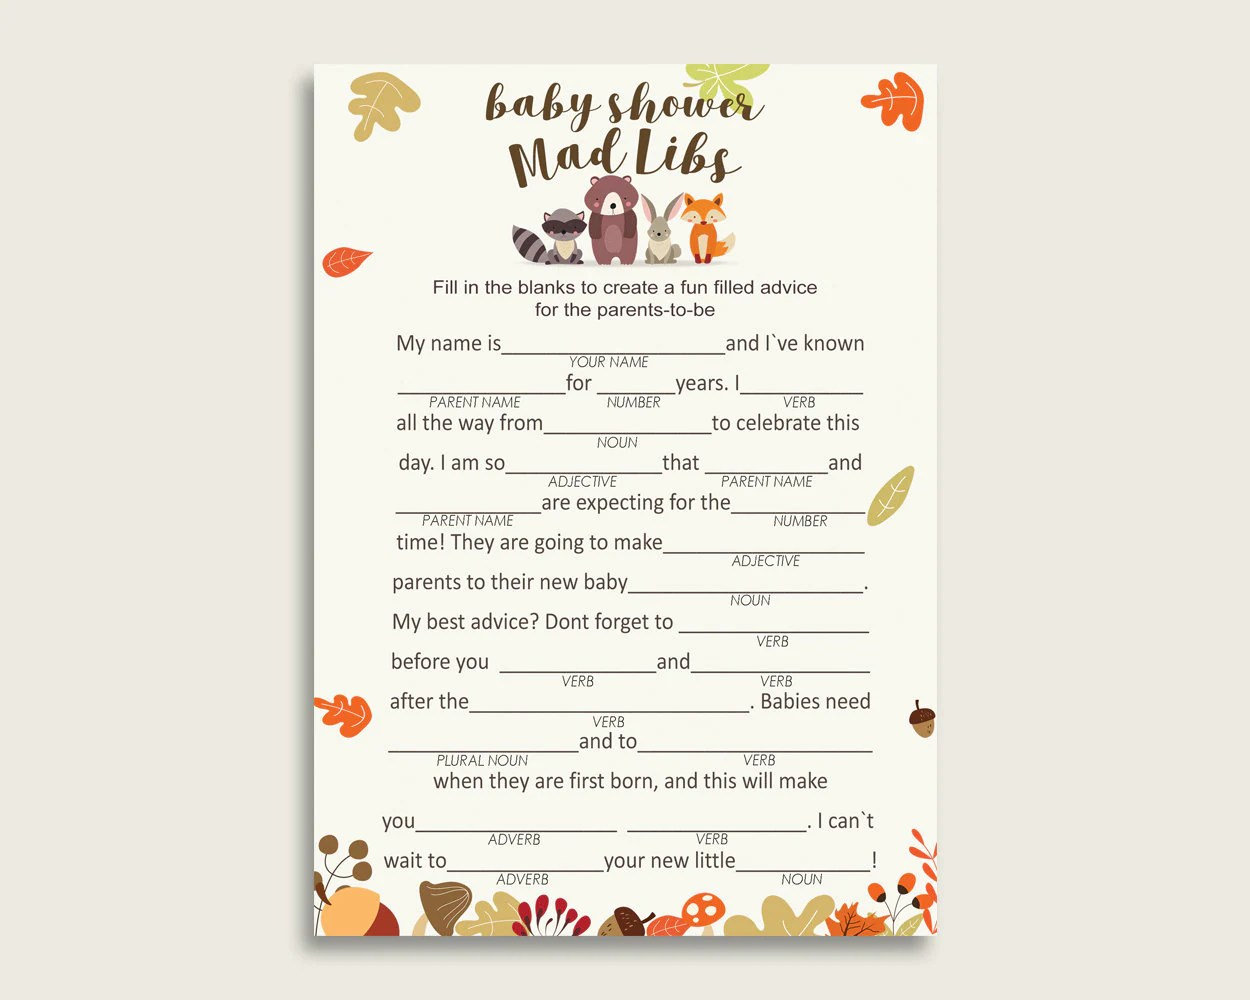 Brown Beige Mad Libs Baby Shower Gender Neutral Game